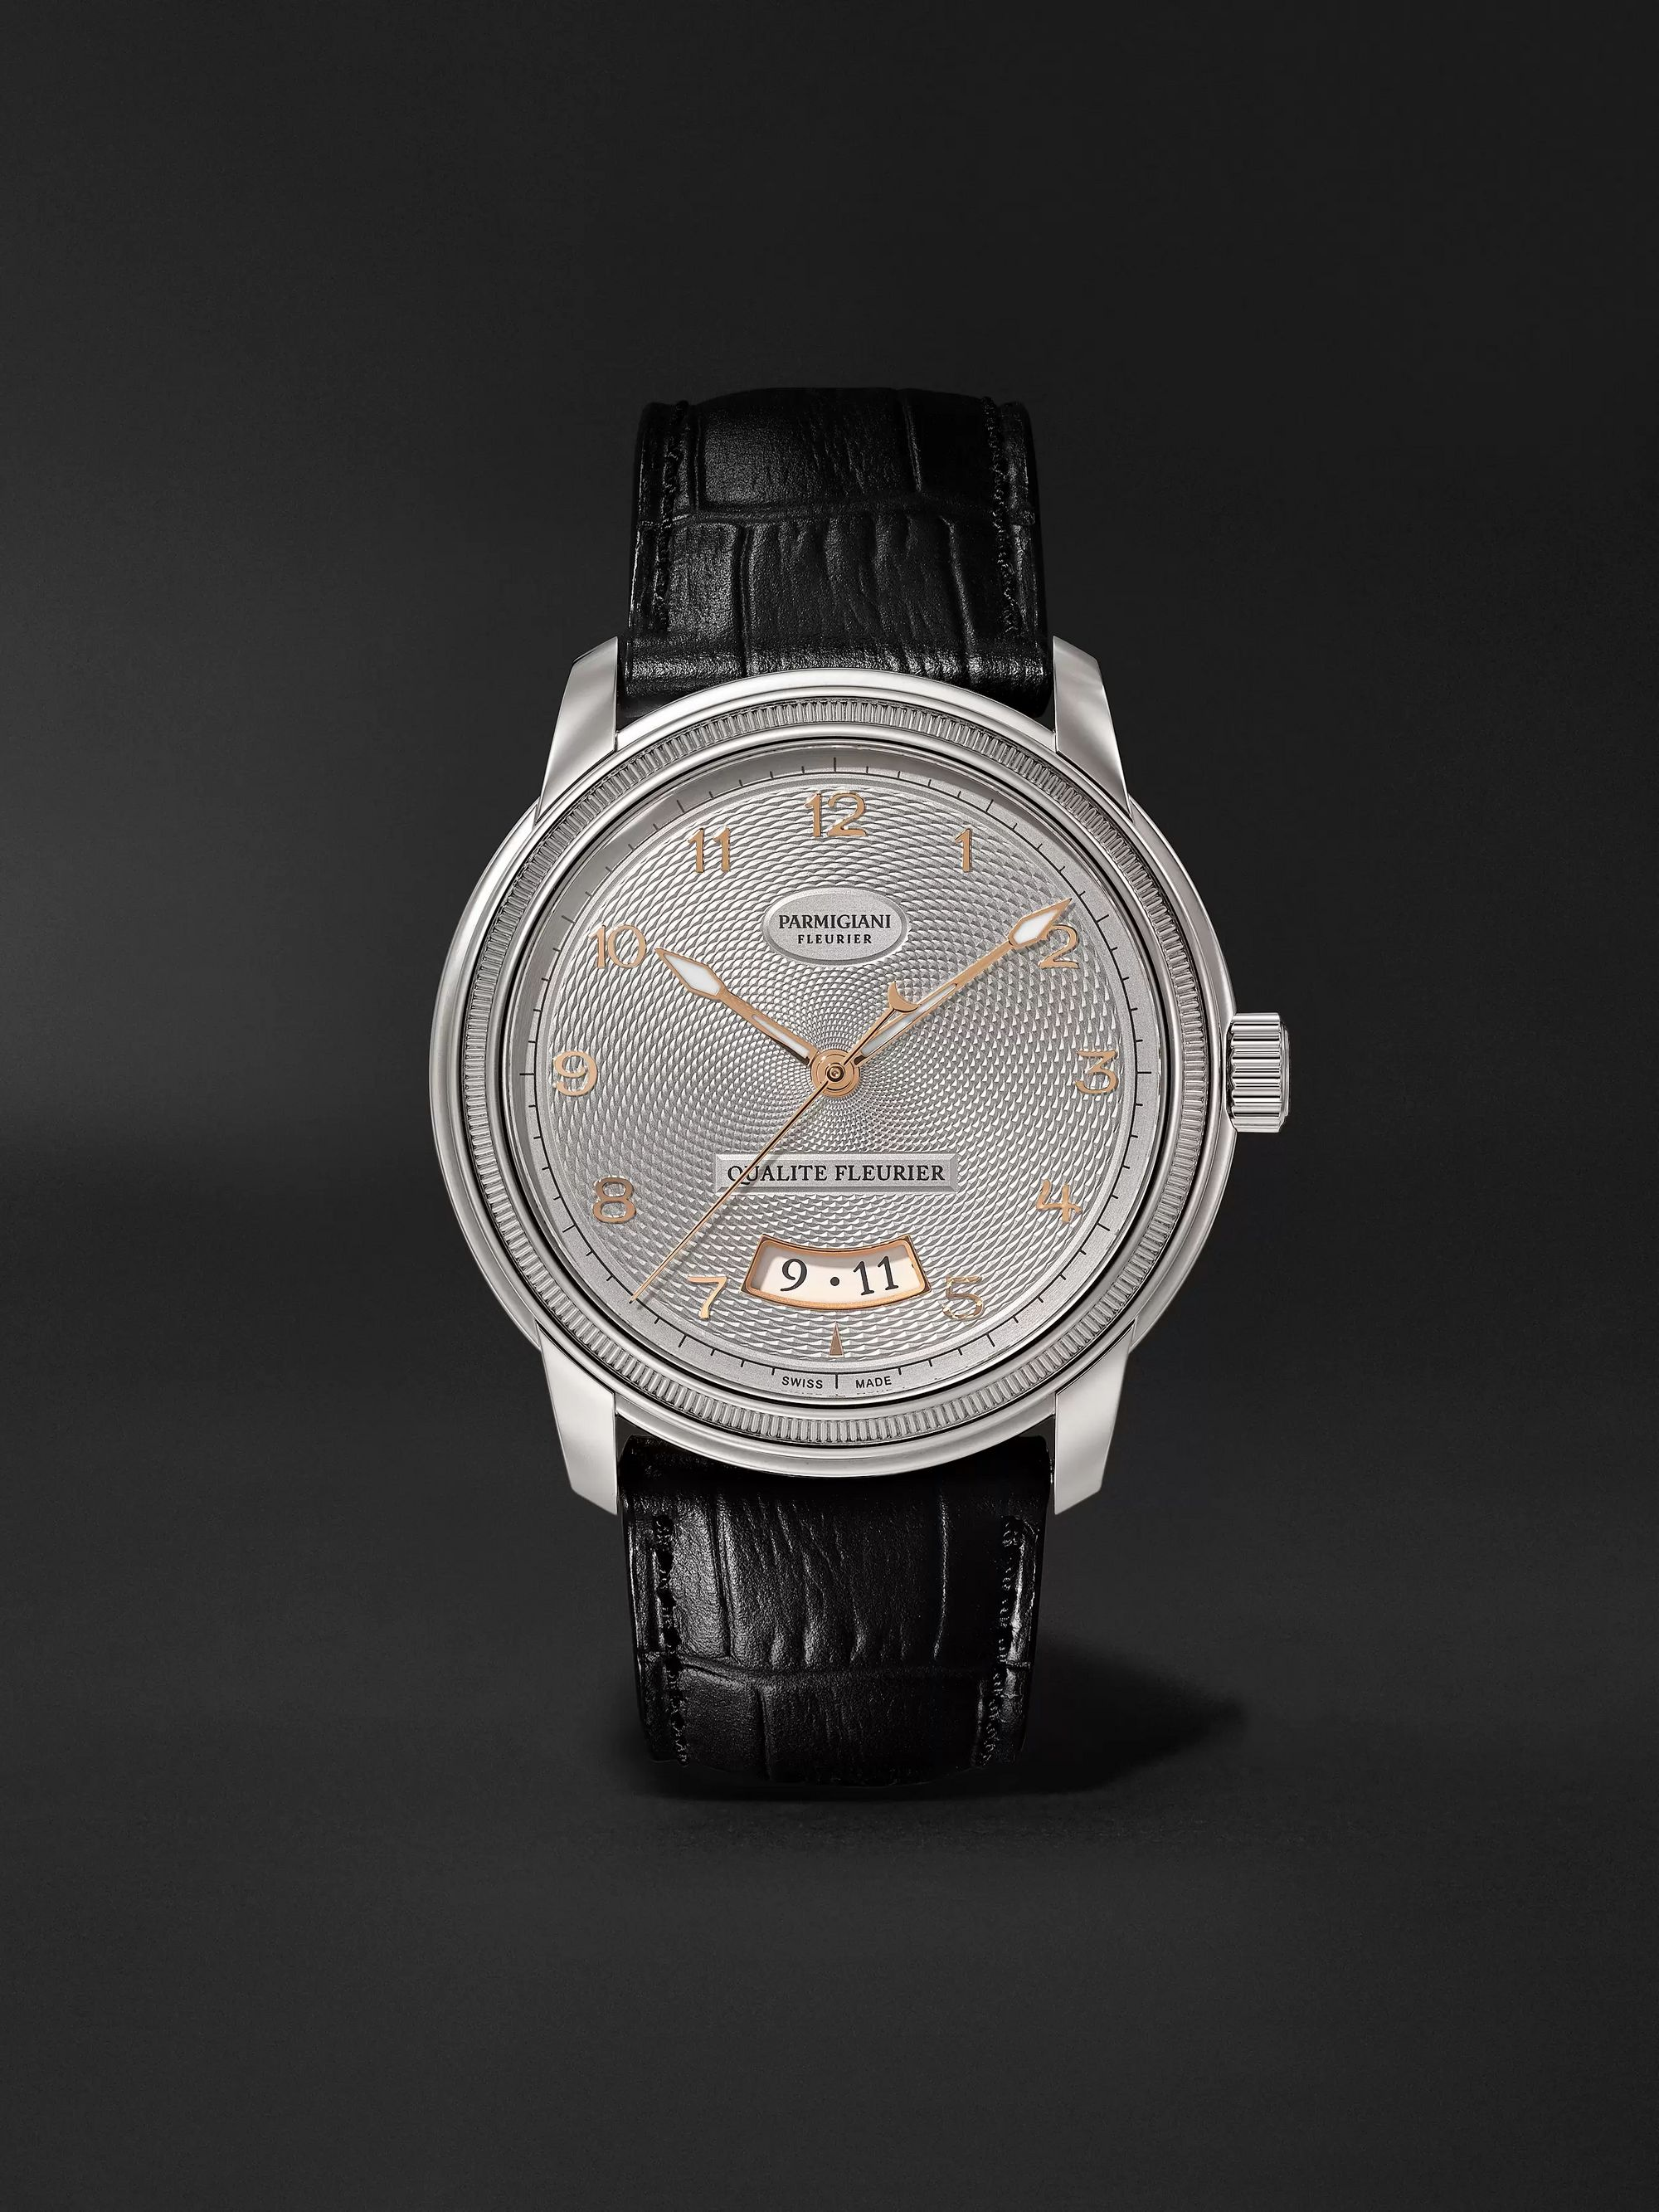 Parmigiani Fleurier Toric Qualité Fleurier Automatic 40.8mm 18-Karat White Gold and Alligator Watch